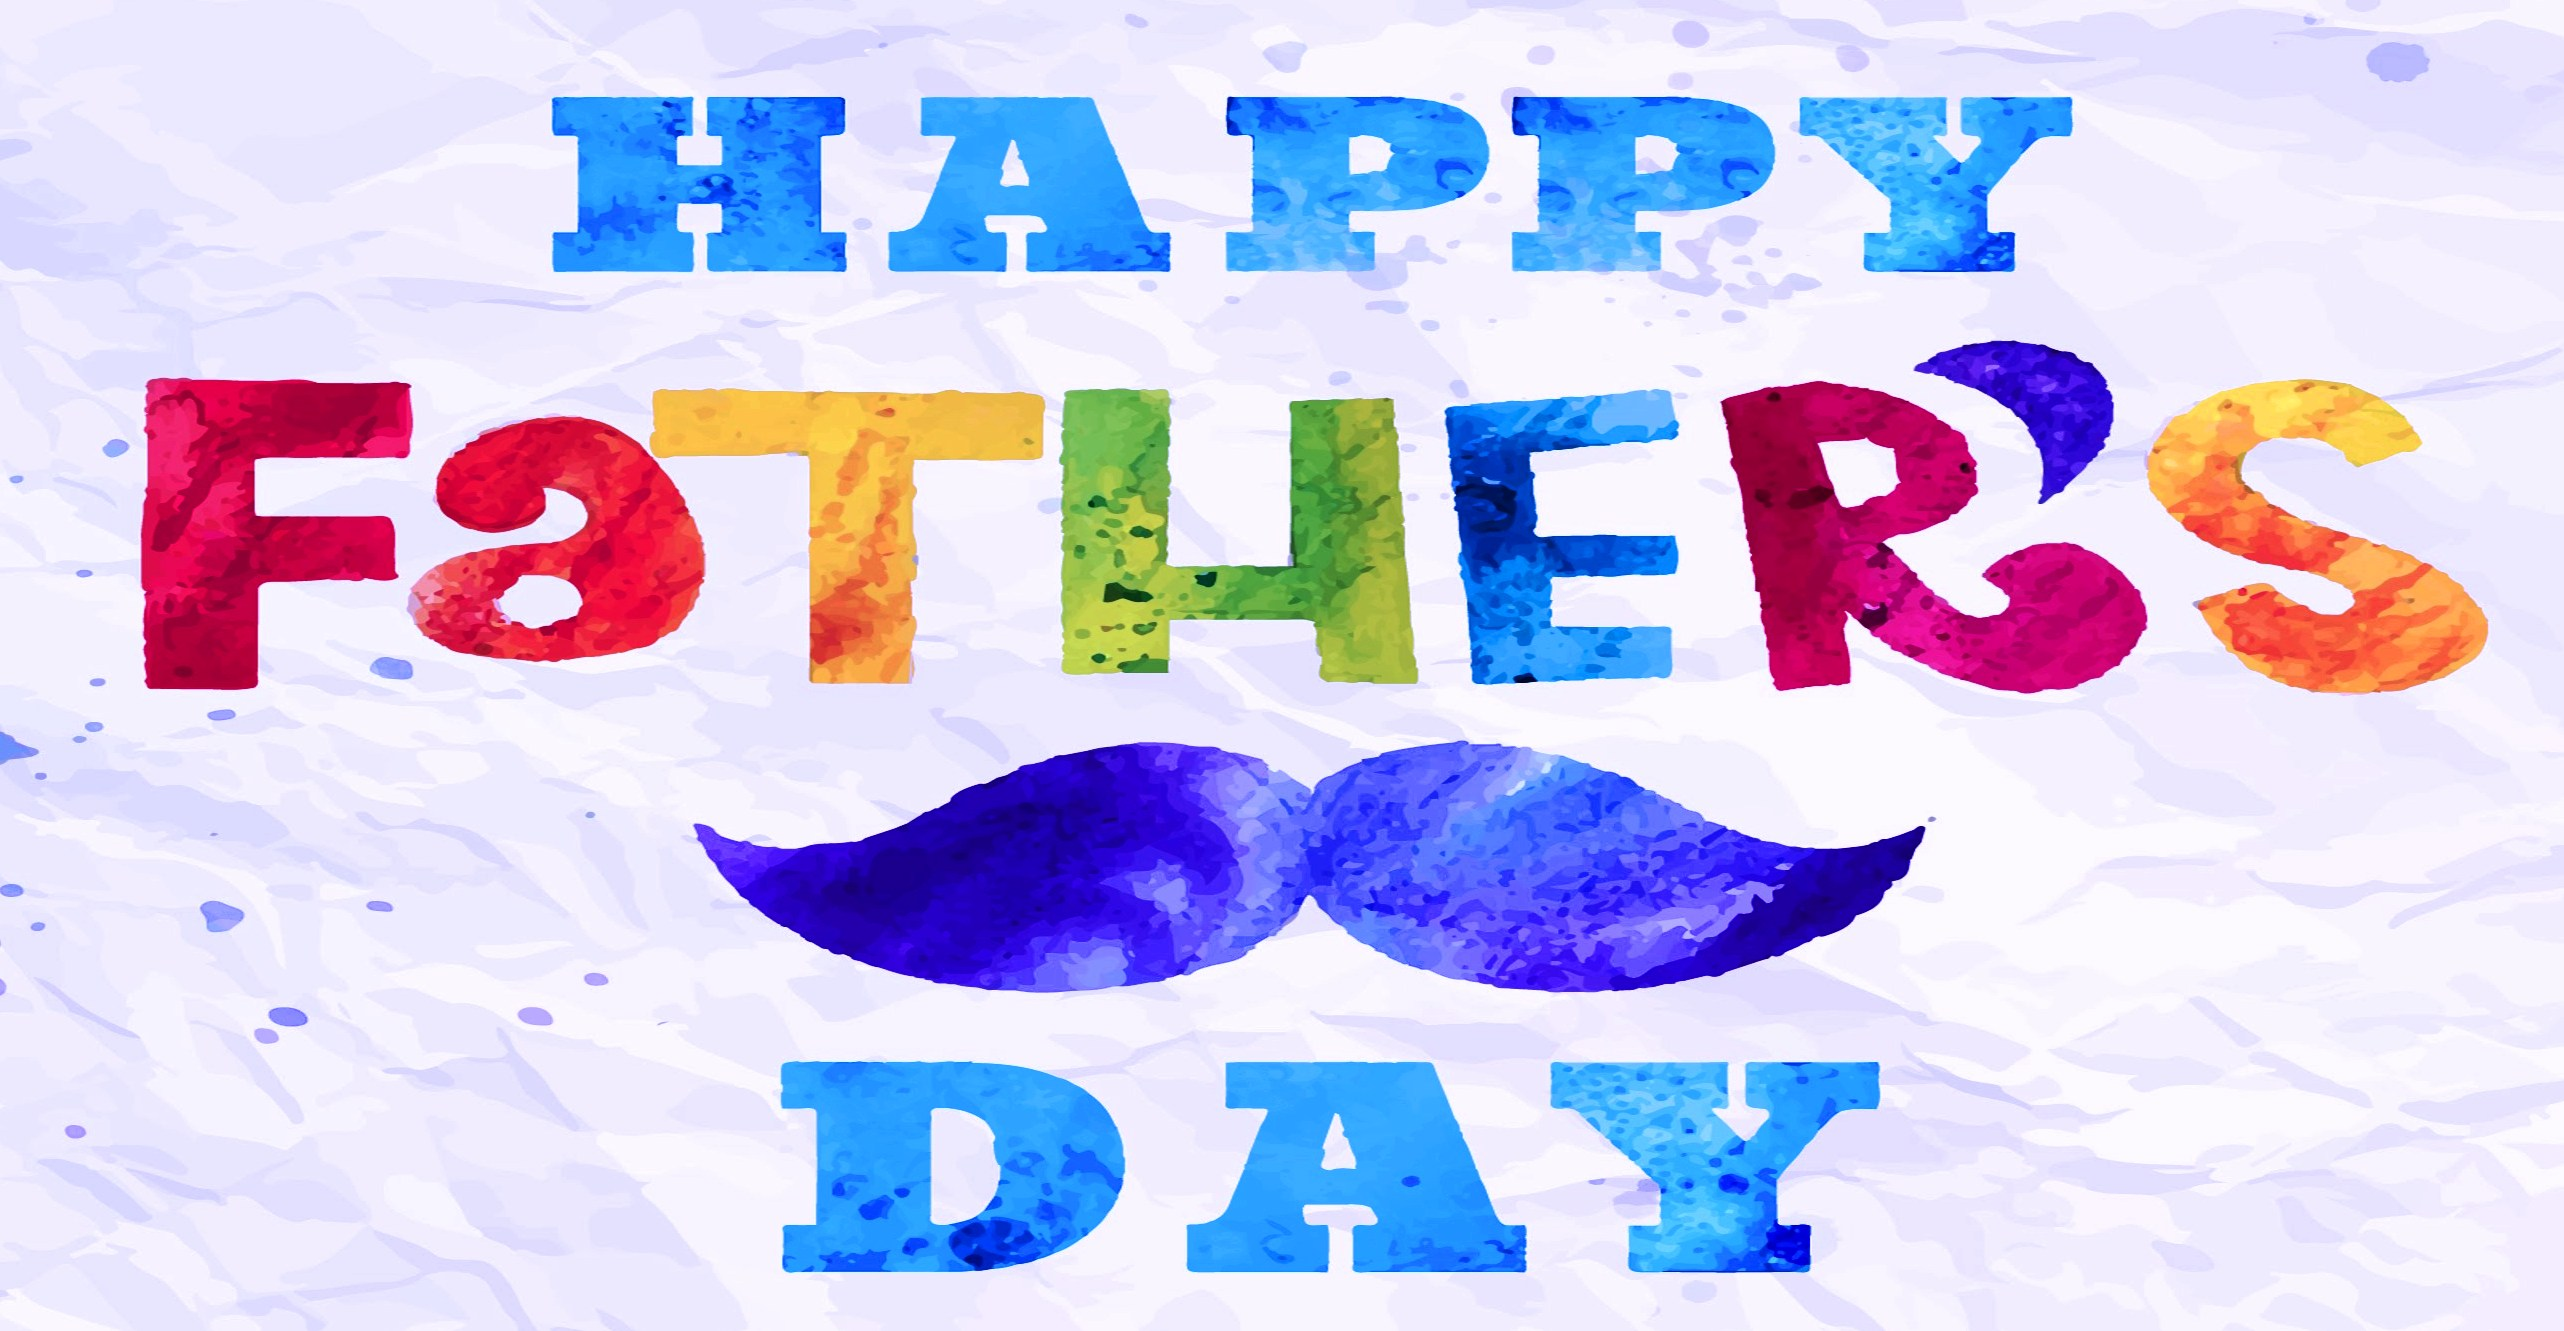 Best fathers day sms text messages 2017 in urdu hindi english new happy fathers day sms 2017 best sms wishes of fathers day m4hsunfo